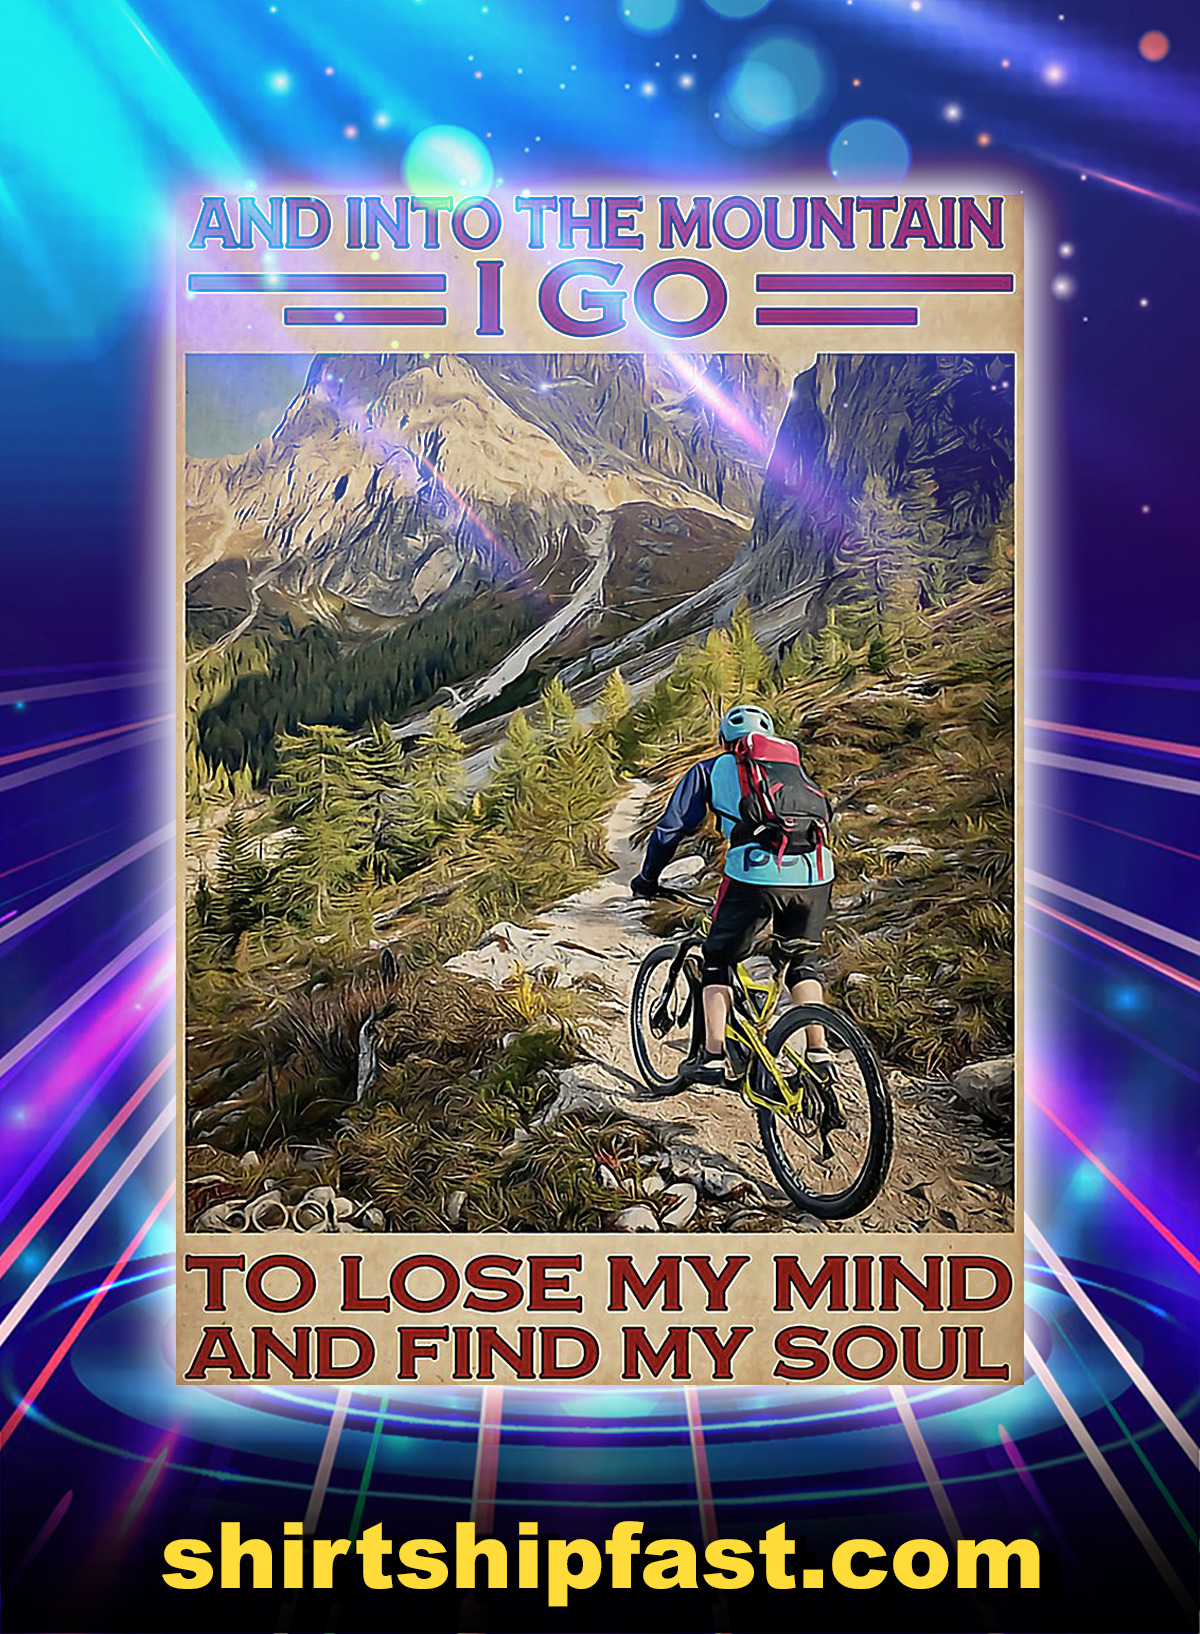 Cyling and into the mountain i go to lose my mind and find my soul poster - A4